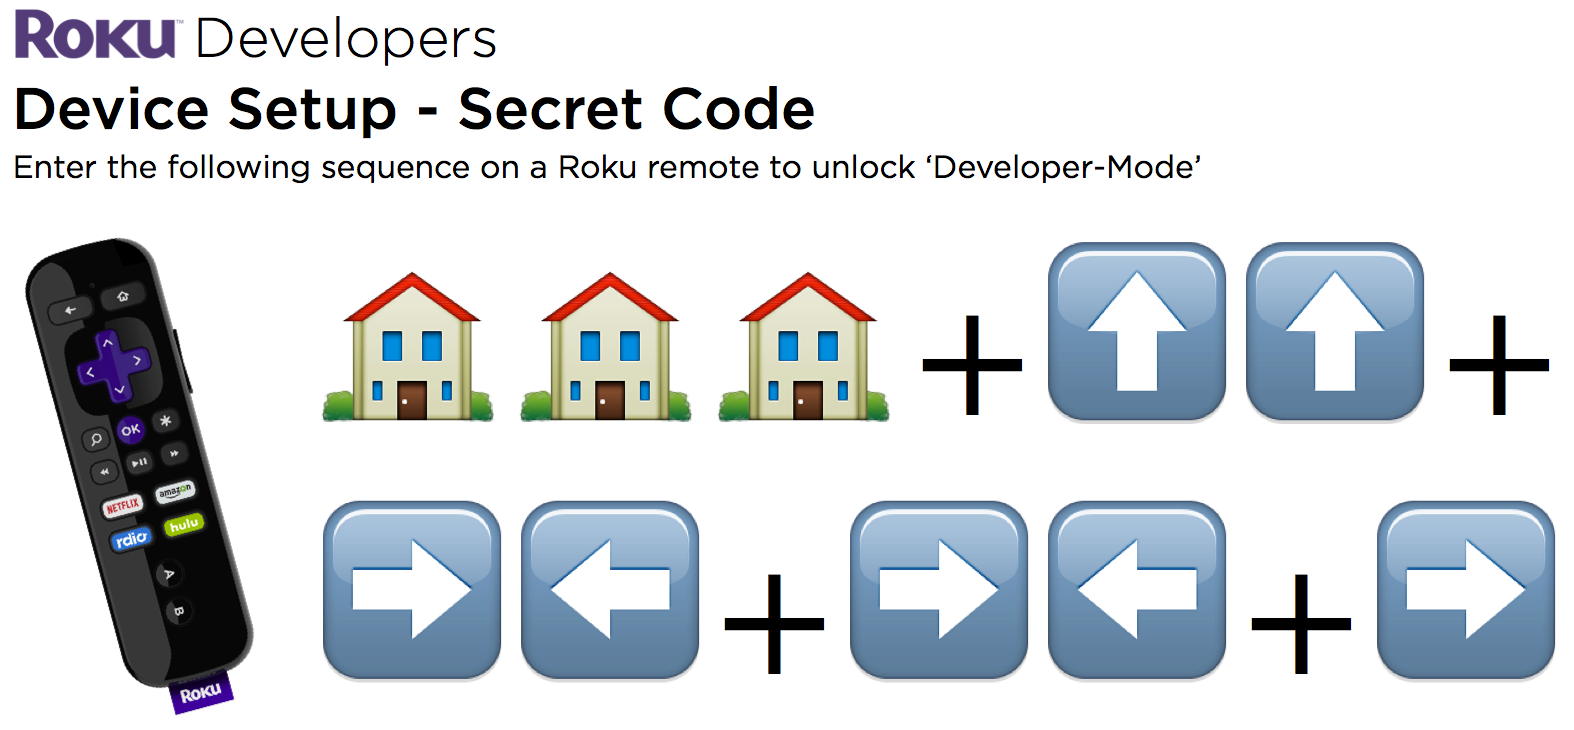 Roku_Device_Setup_-_Secret_Code